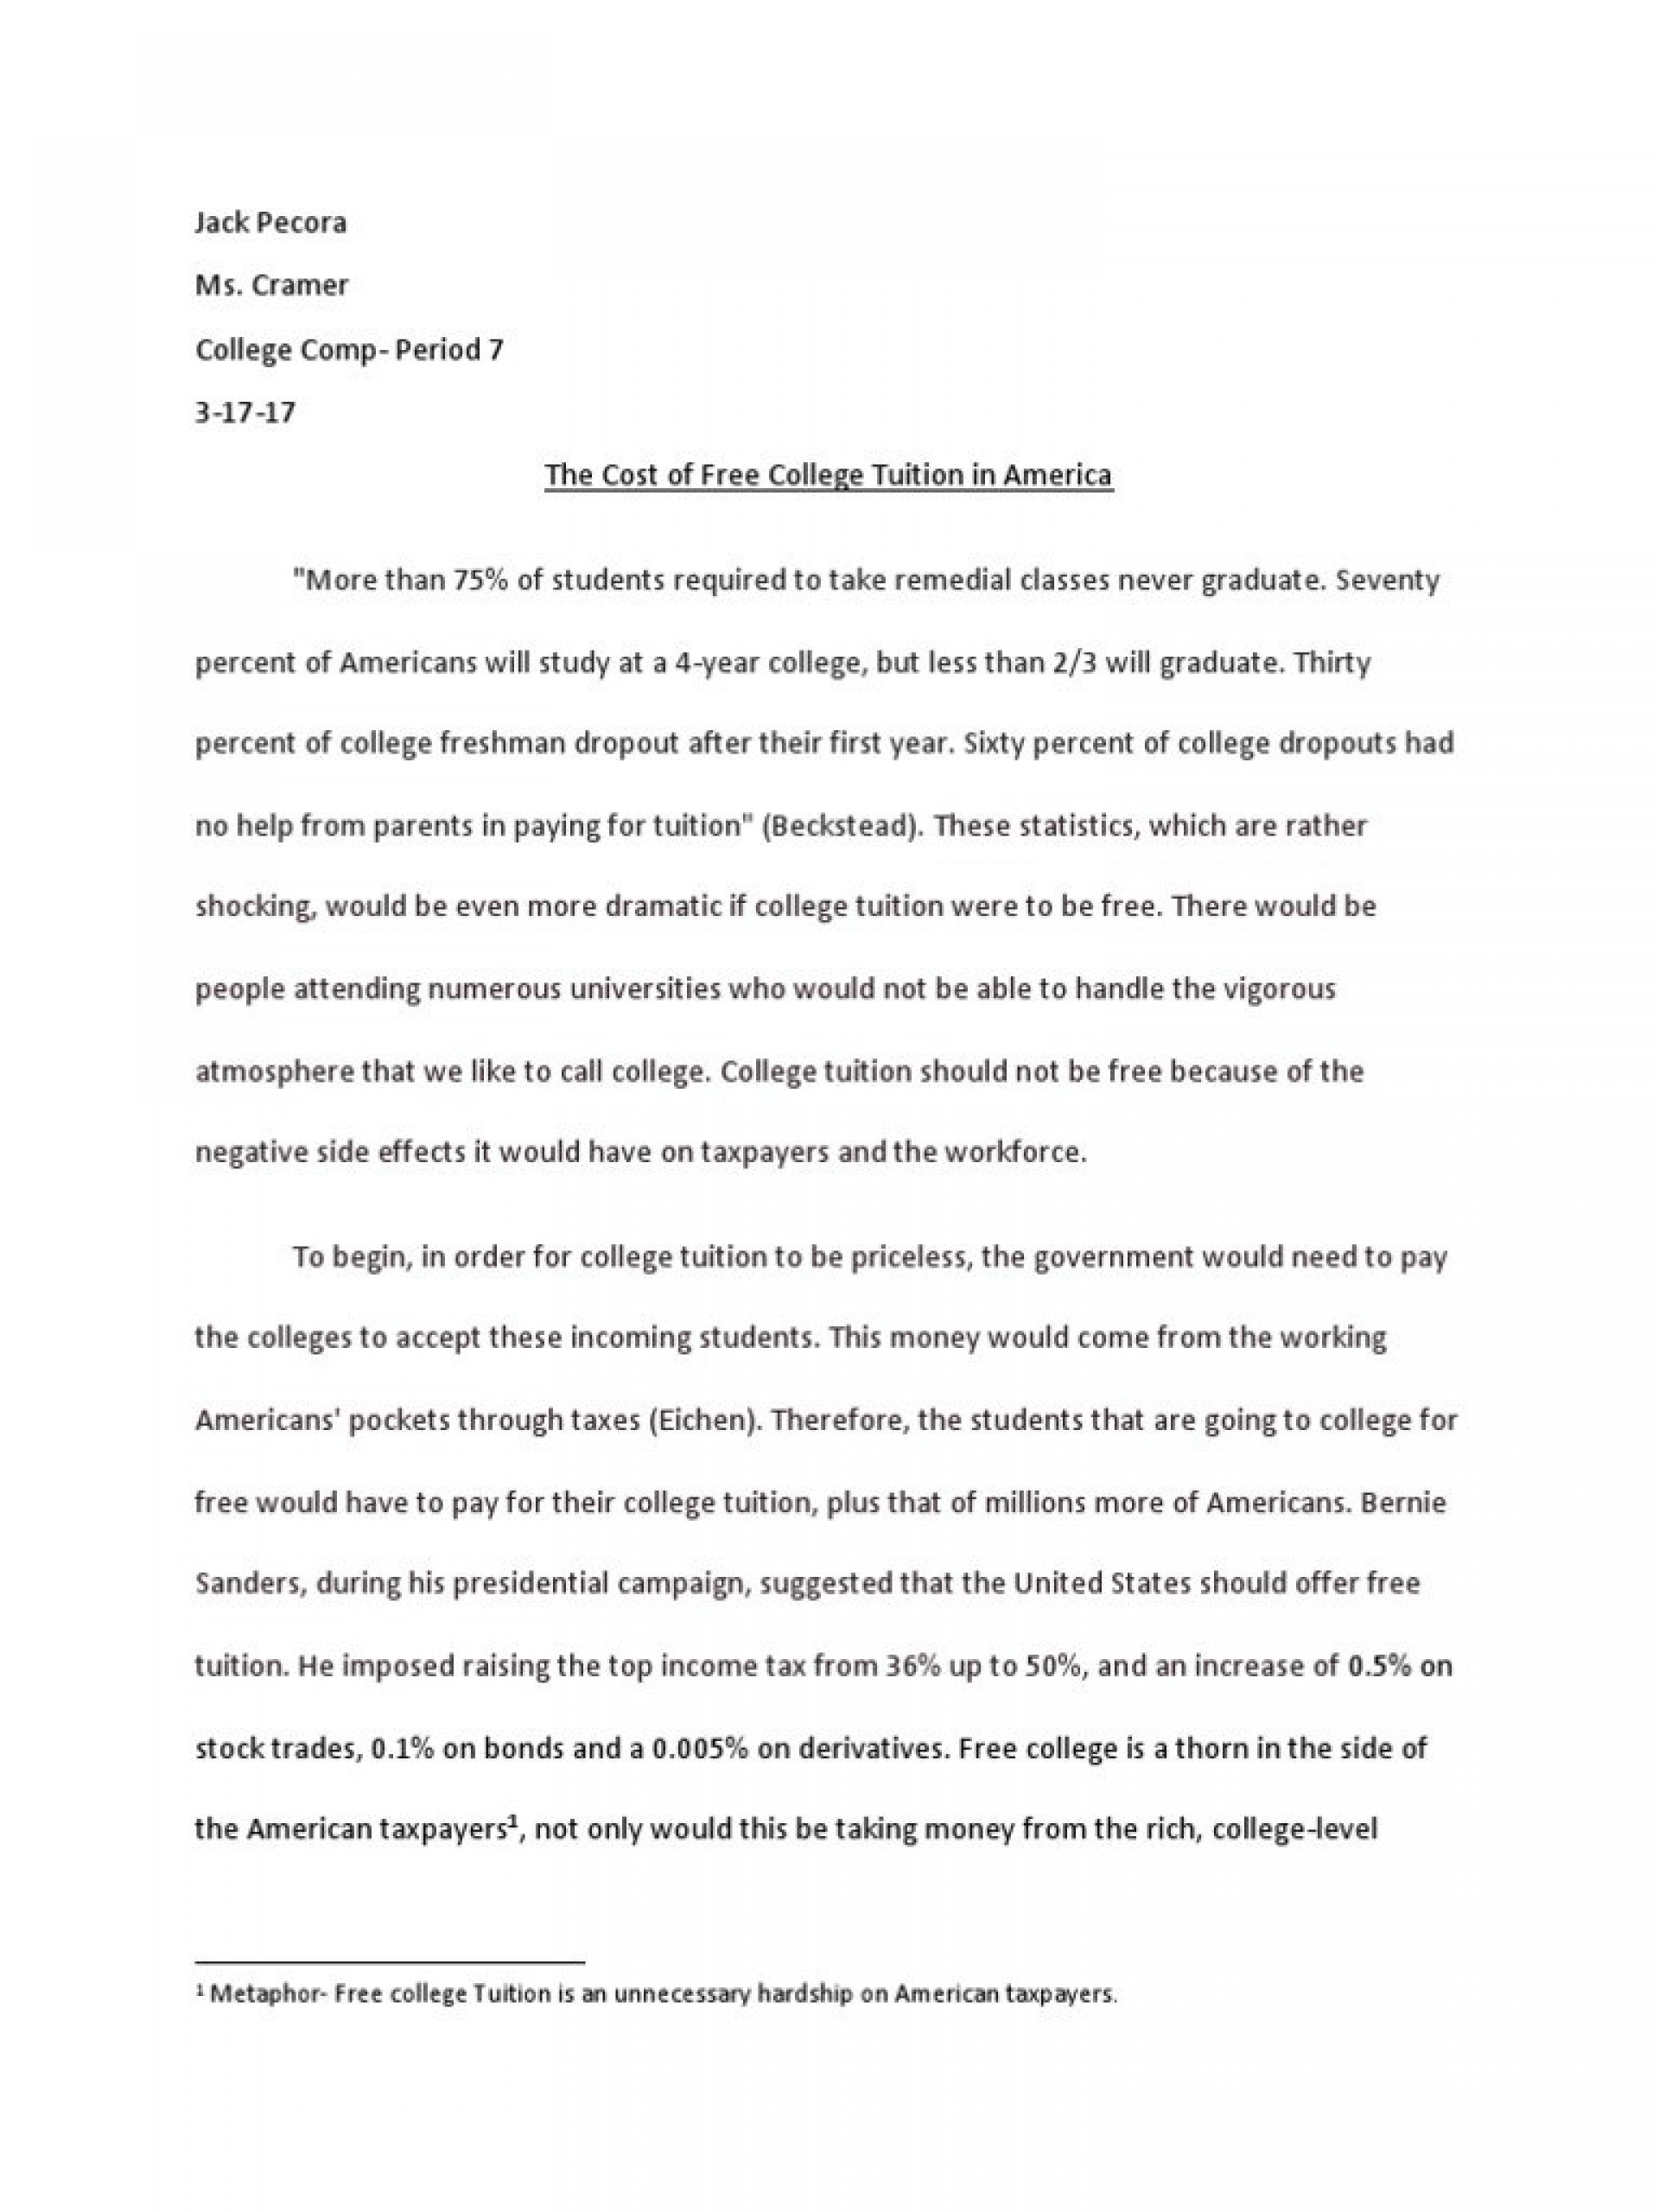 016 Argument Essay Free College Tuition Payments Should Pdf For Everyone To Attend Education Argumentative Persuasive Community Not Awesome Outline Template On Texting While Driving Examples 1920